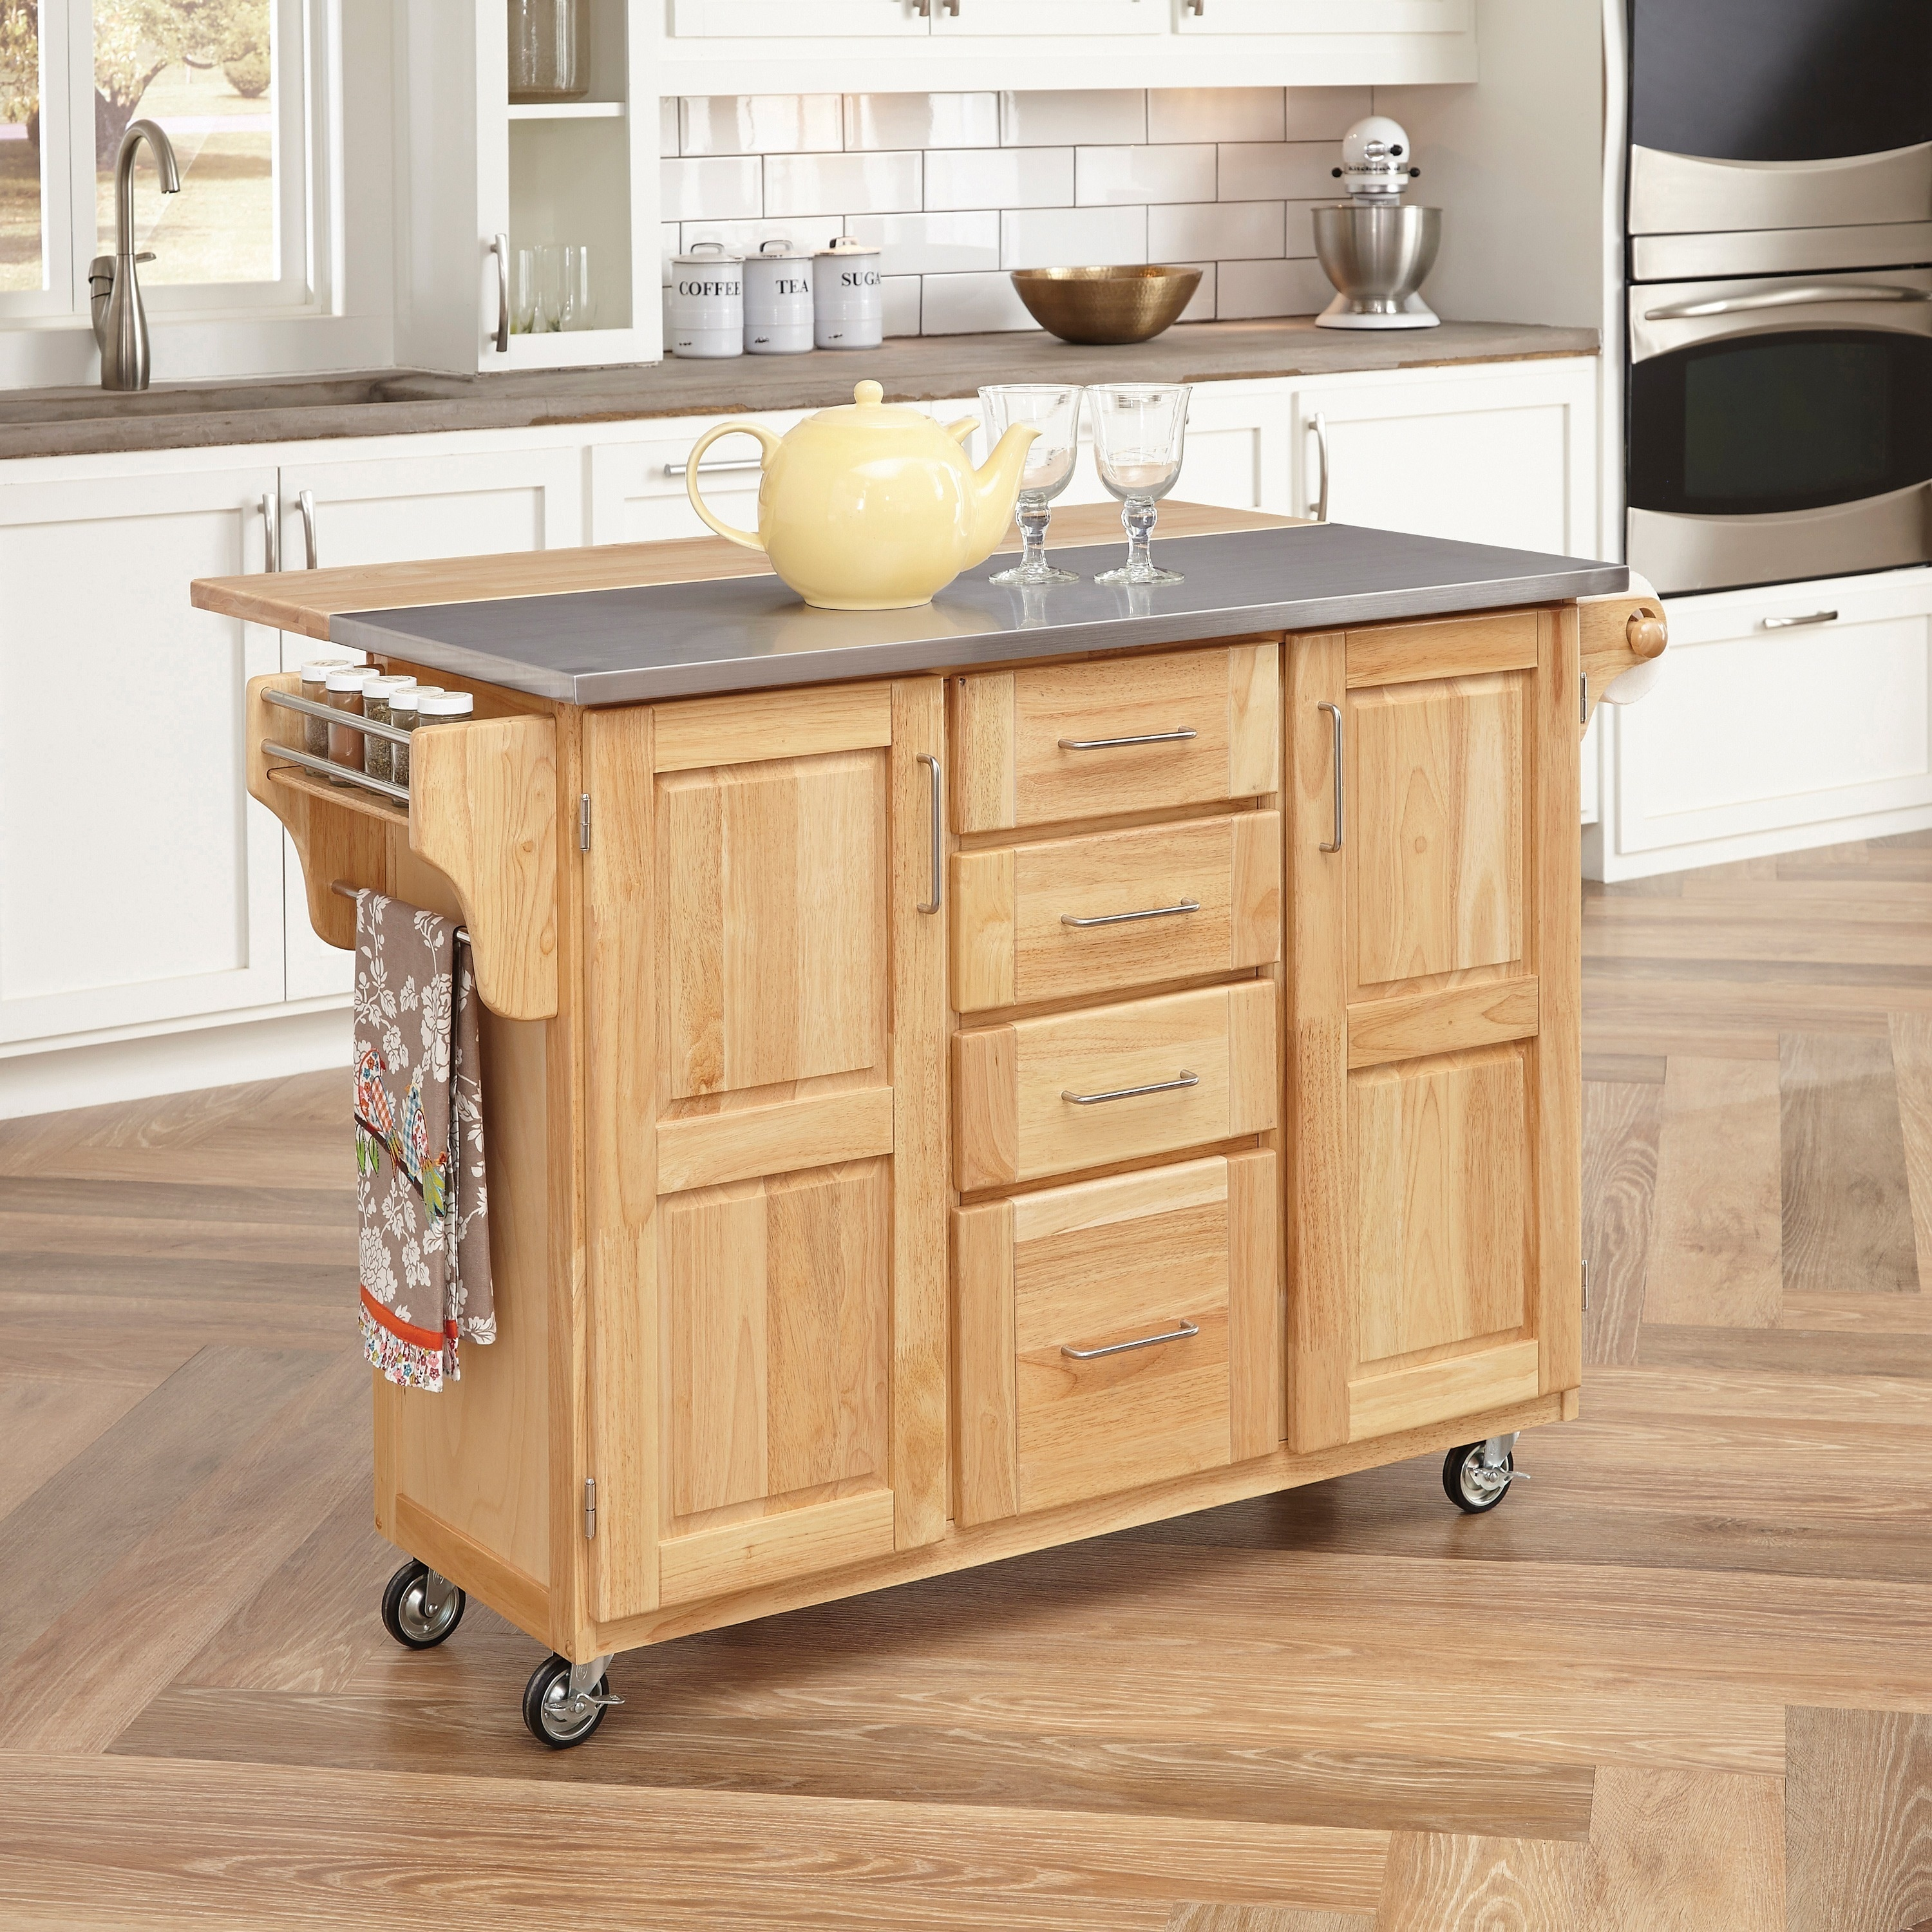 Overstock.com & Buy Kitchen Carts Online at Overstock | Our Best Kitchen ...